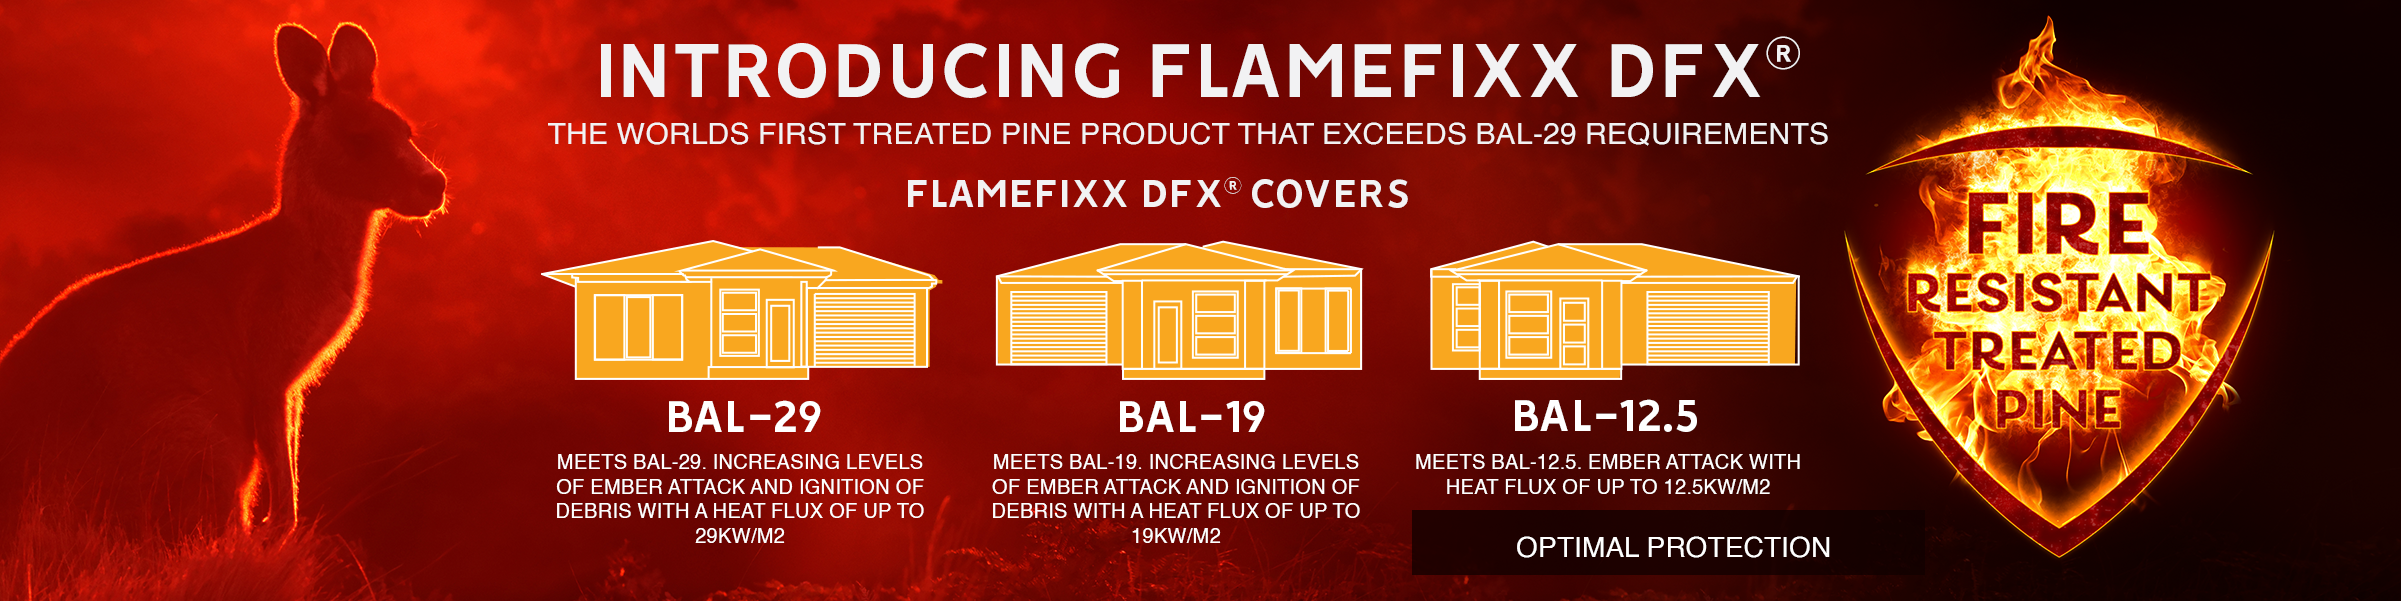 Introducing FLAMEfixx dfx™